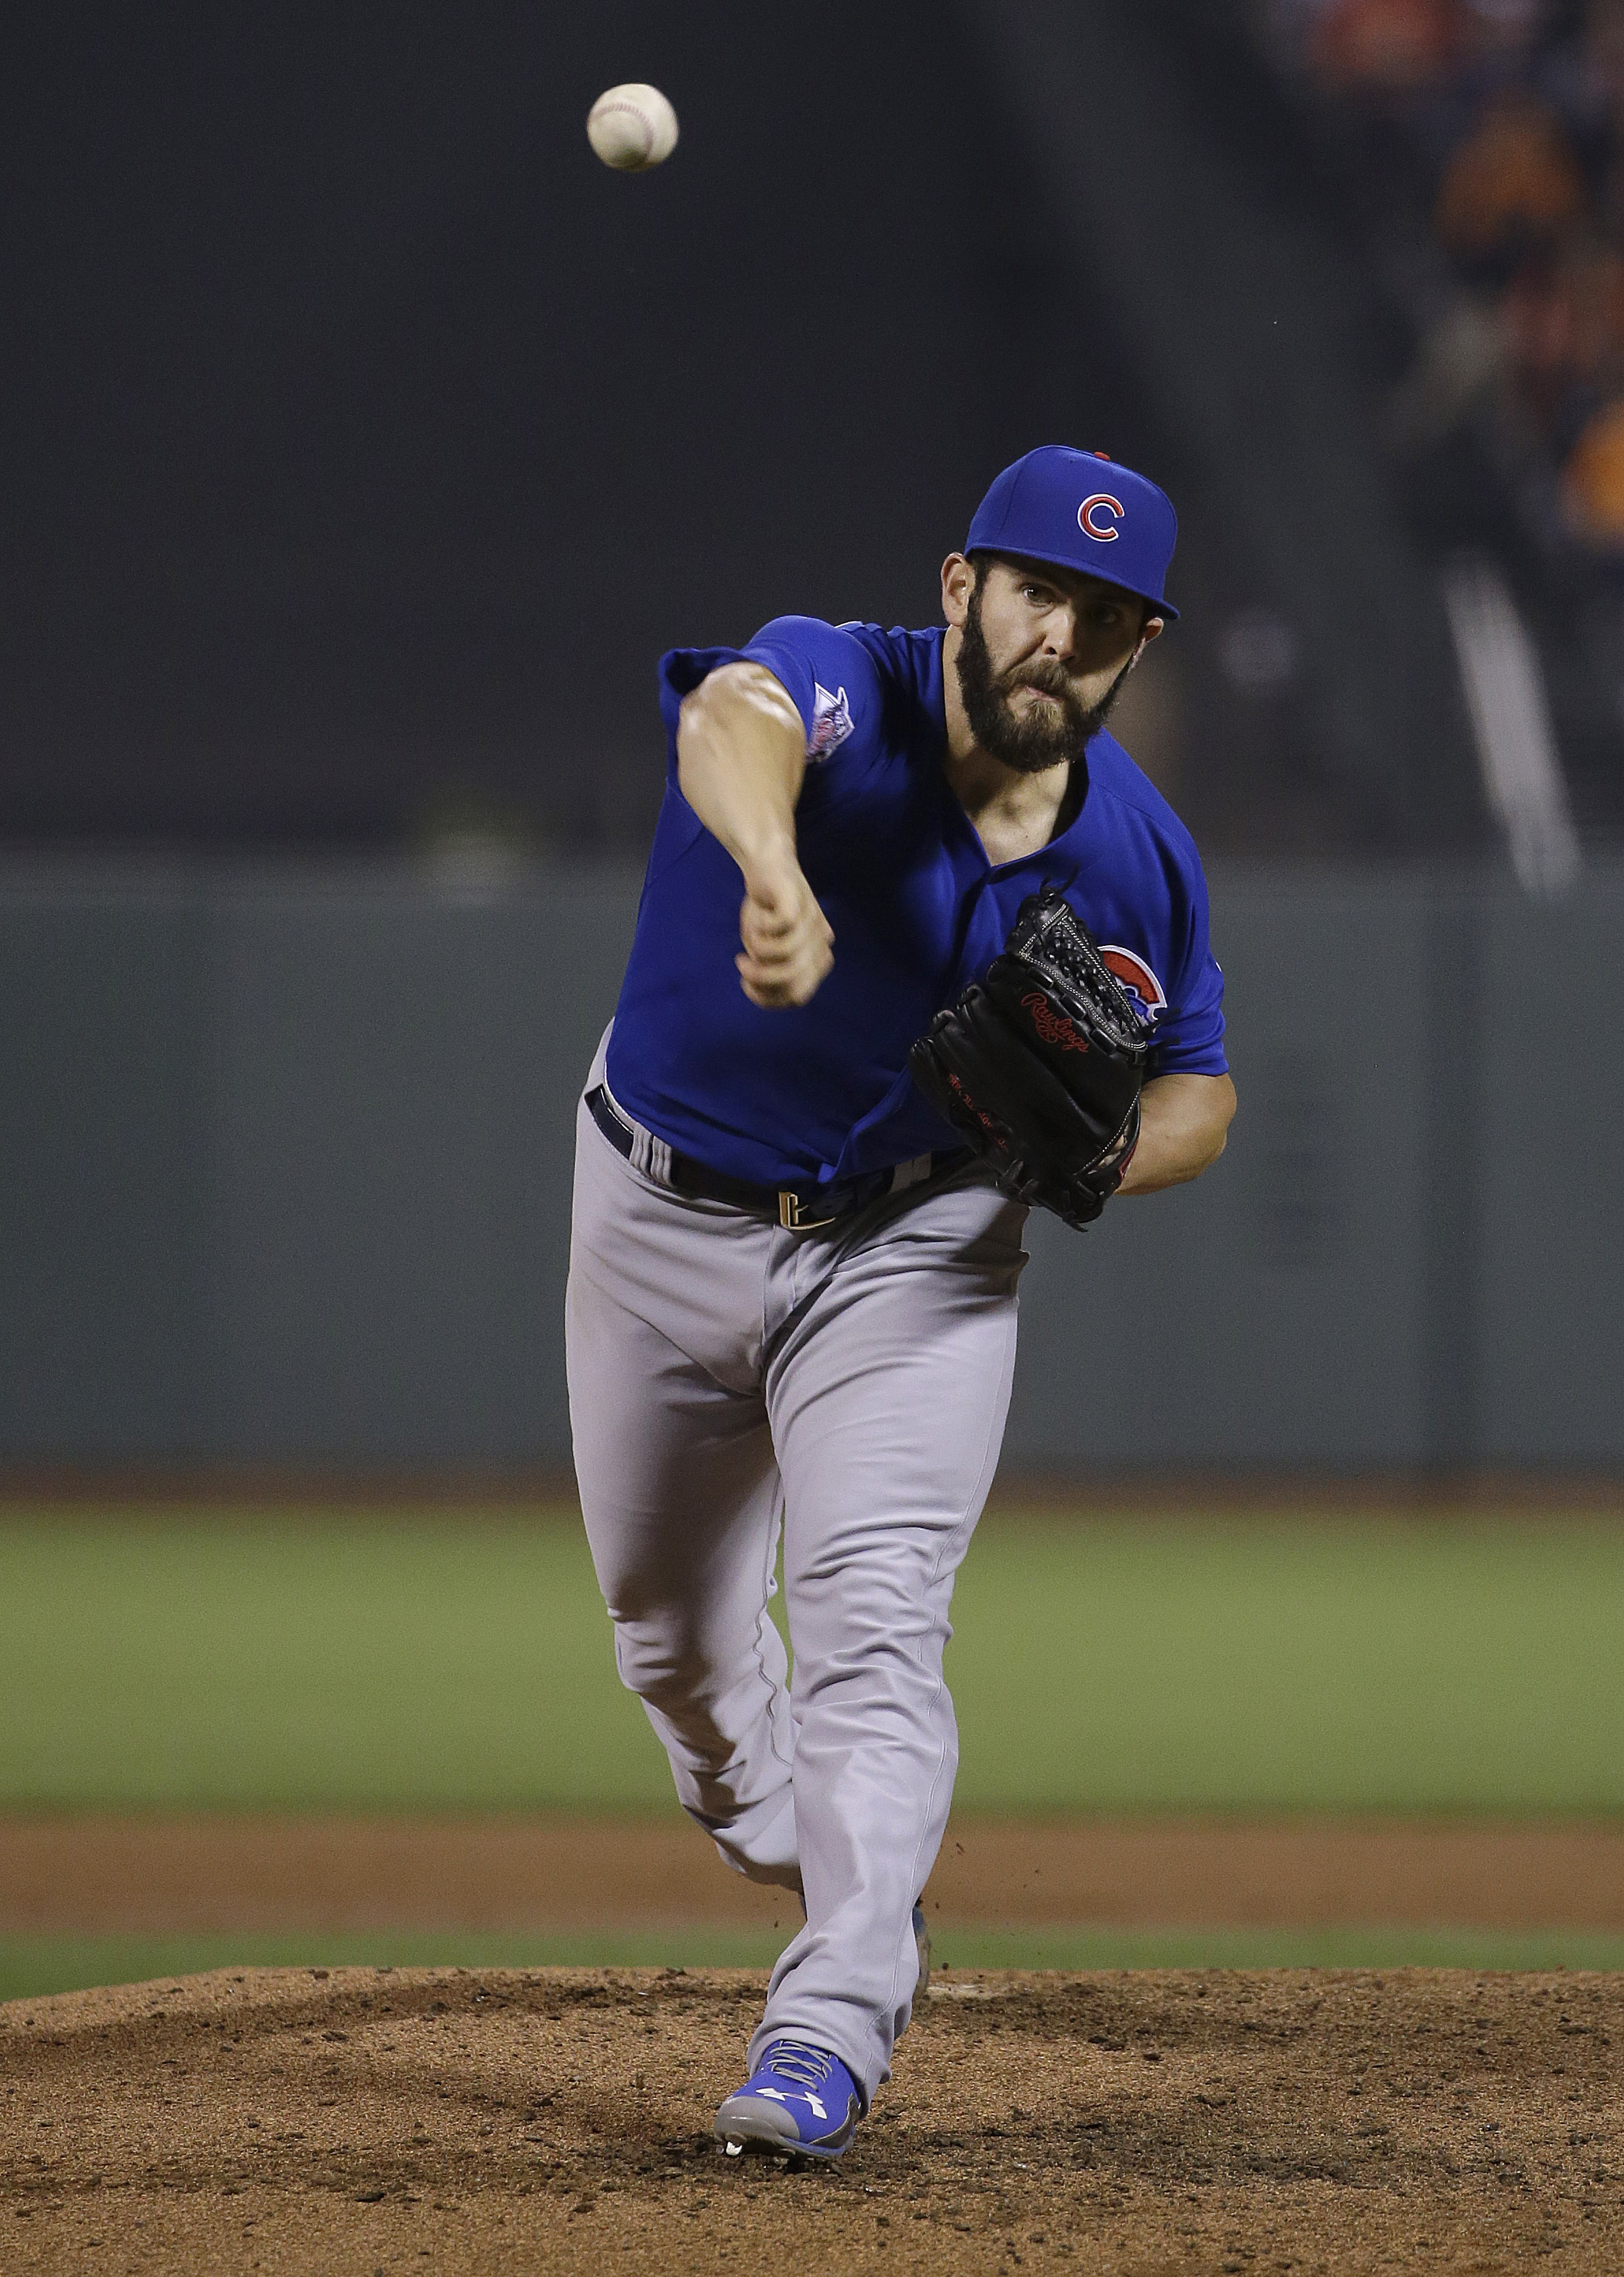 Chicago Cubs pitcher Jake Arrieta throws against the San Francisco Giants during the fourth inning of a baseball game in San Francisco, Tuesday, Aug. 25, 2015. (AP Photo/Jeff Chiu)